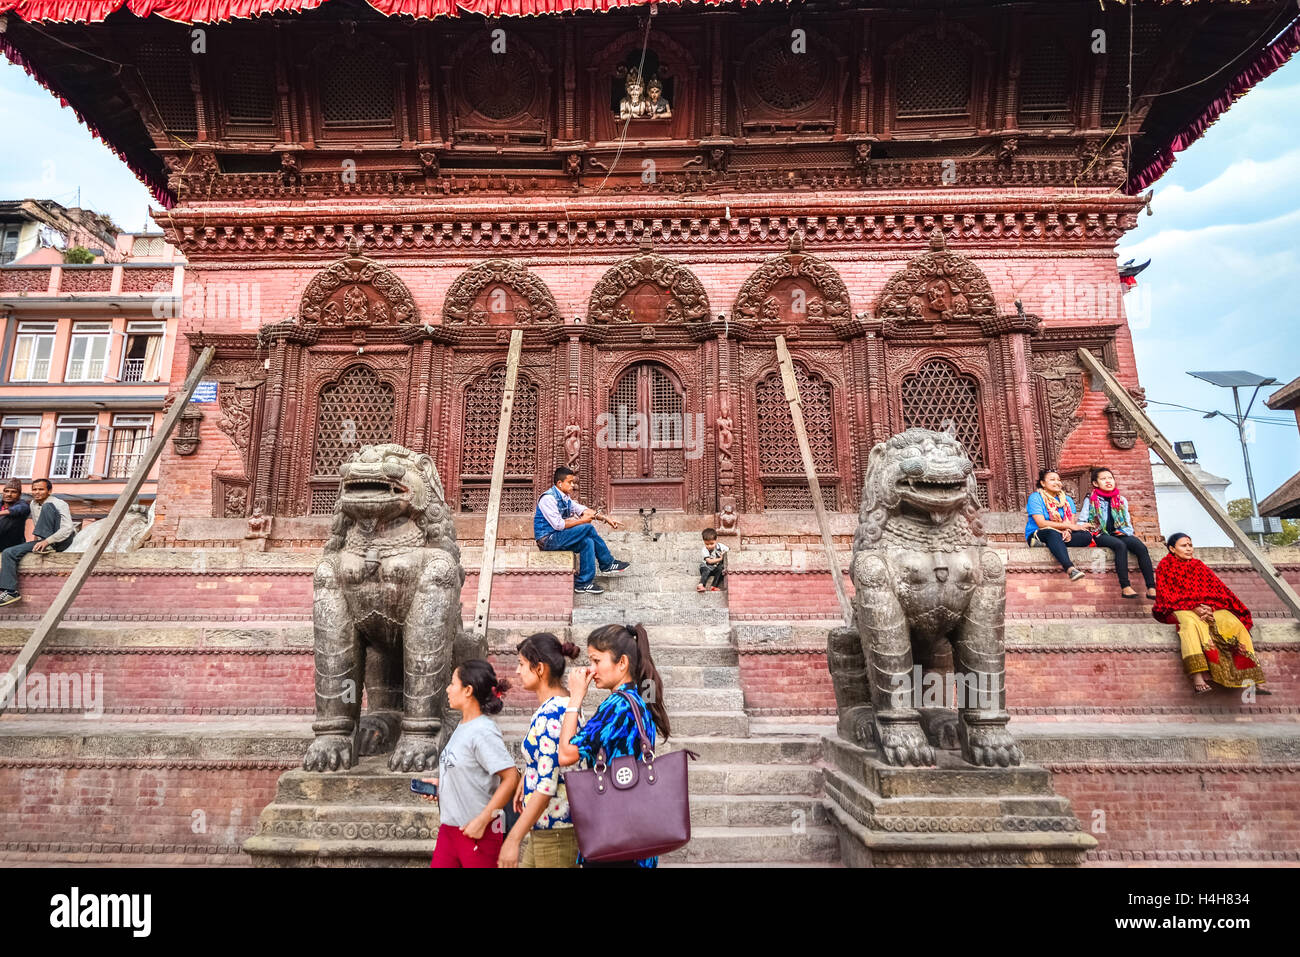 People having leisure time on the staircase leading into Shiva Parvati temple in Kathmandu Durbar Square. © - Stock Image